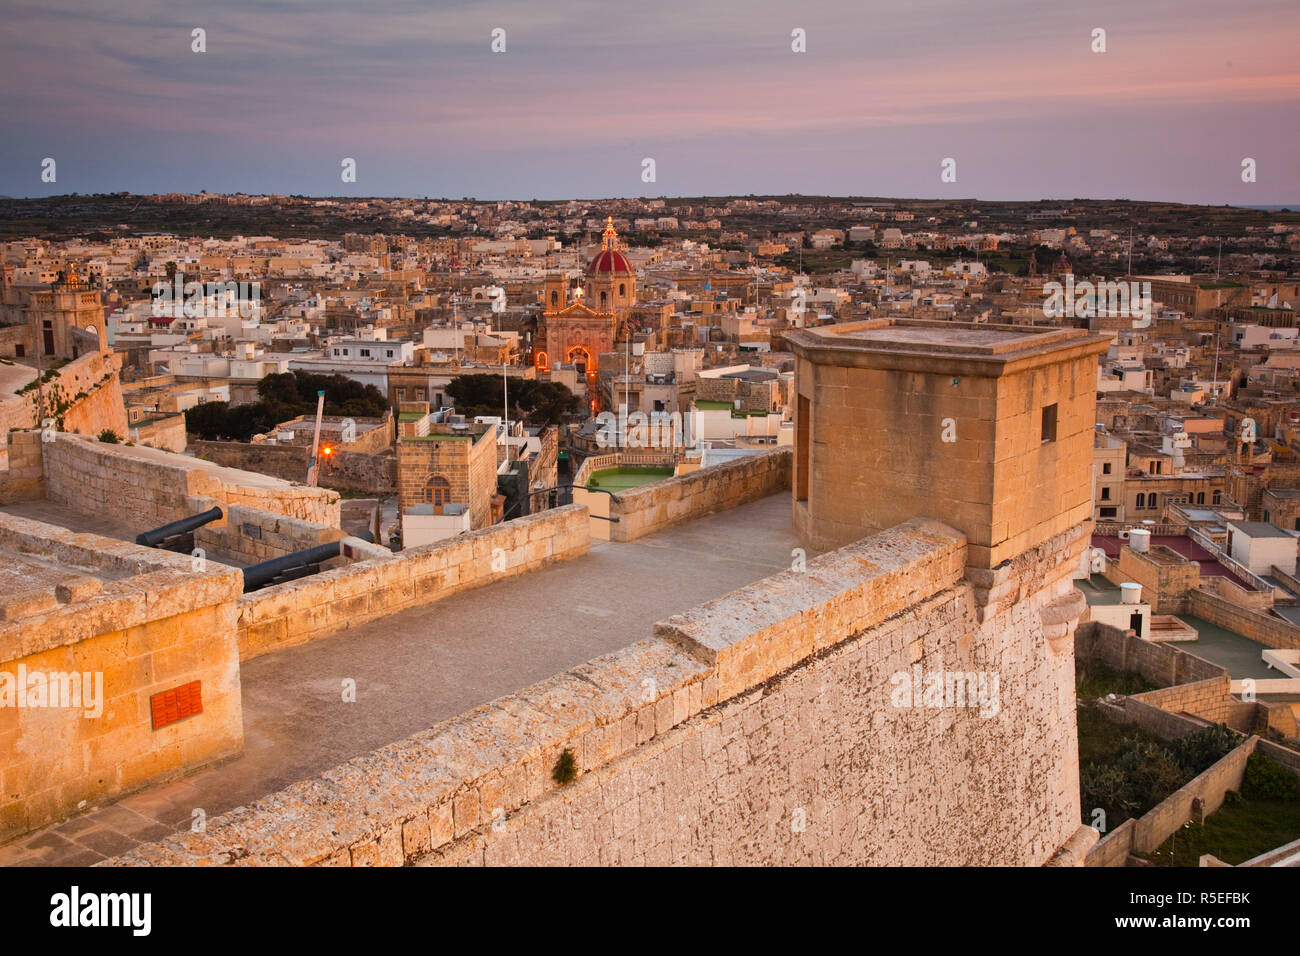 Malta, Gozo Island, Victoria-Rabat, elevated town view with Basilica of St. George from Il-Kastell fortress Stock Photo